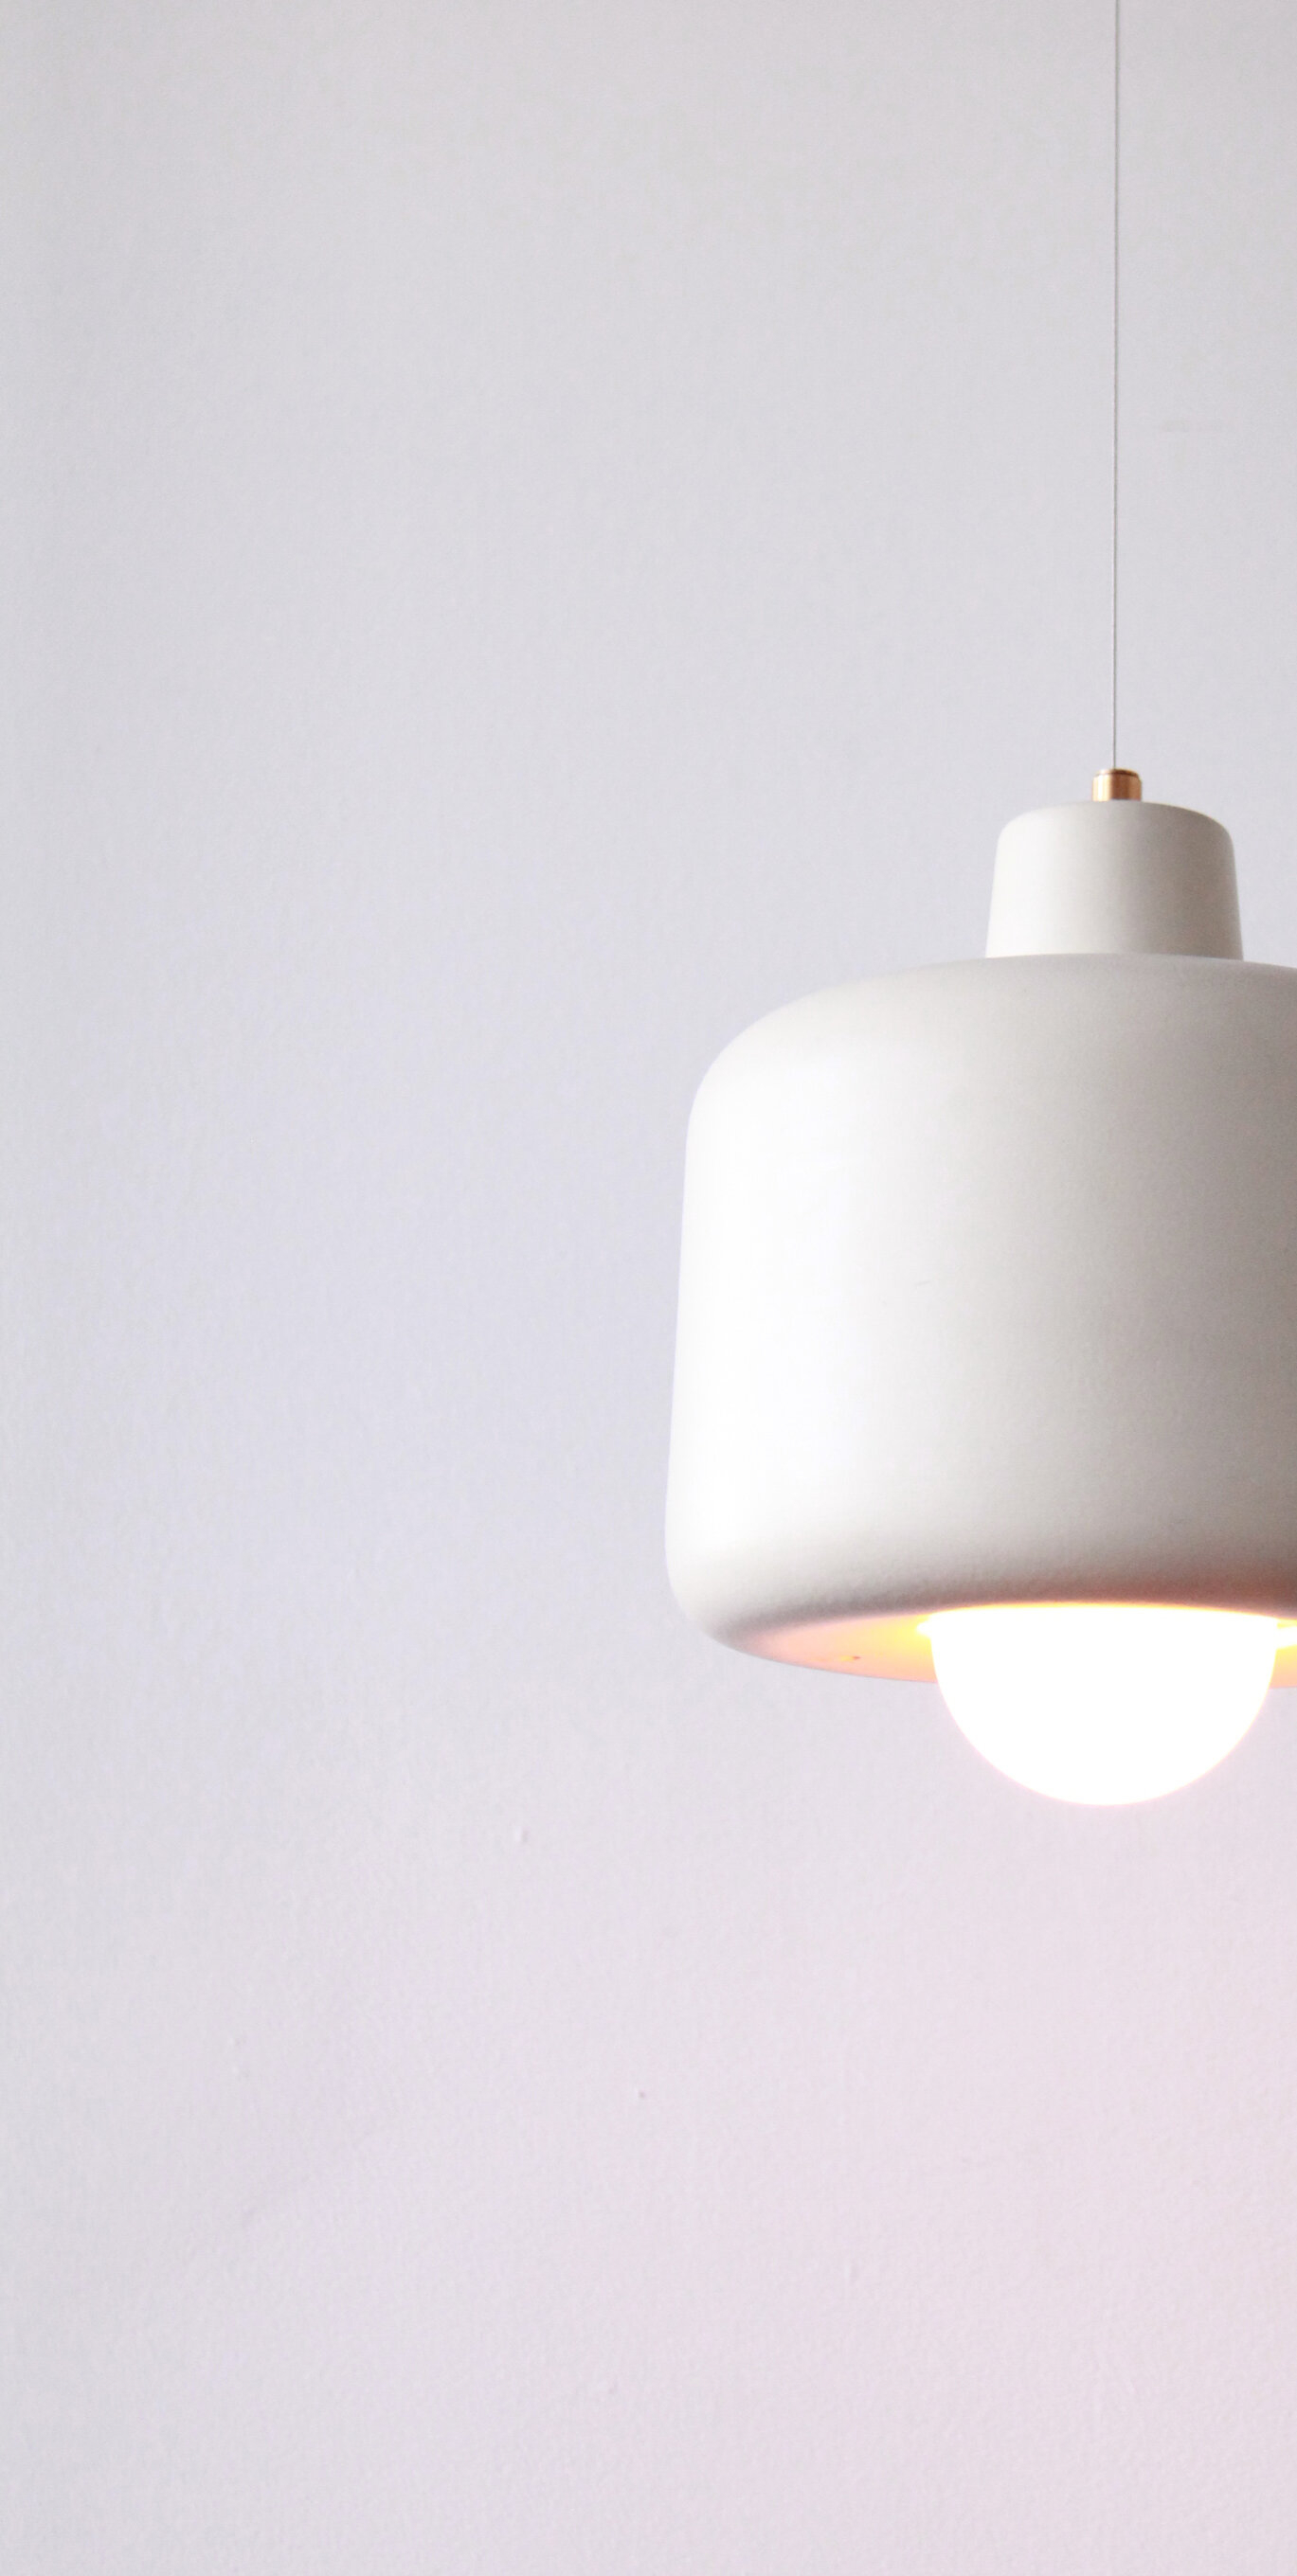 studio-botté_beige_Ramik_lamp_lighting_design_pendant_suspension_light_upcyle_ceramic_2.jpg